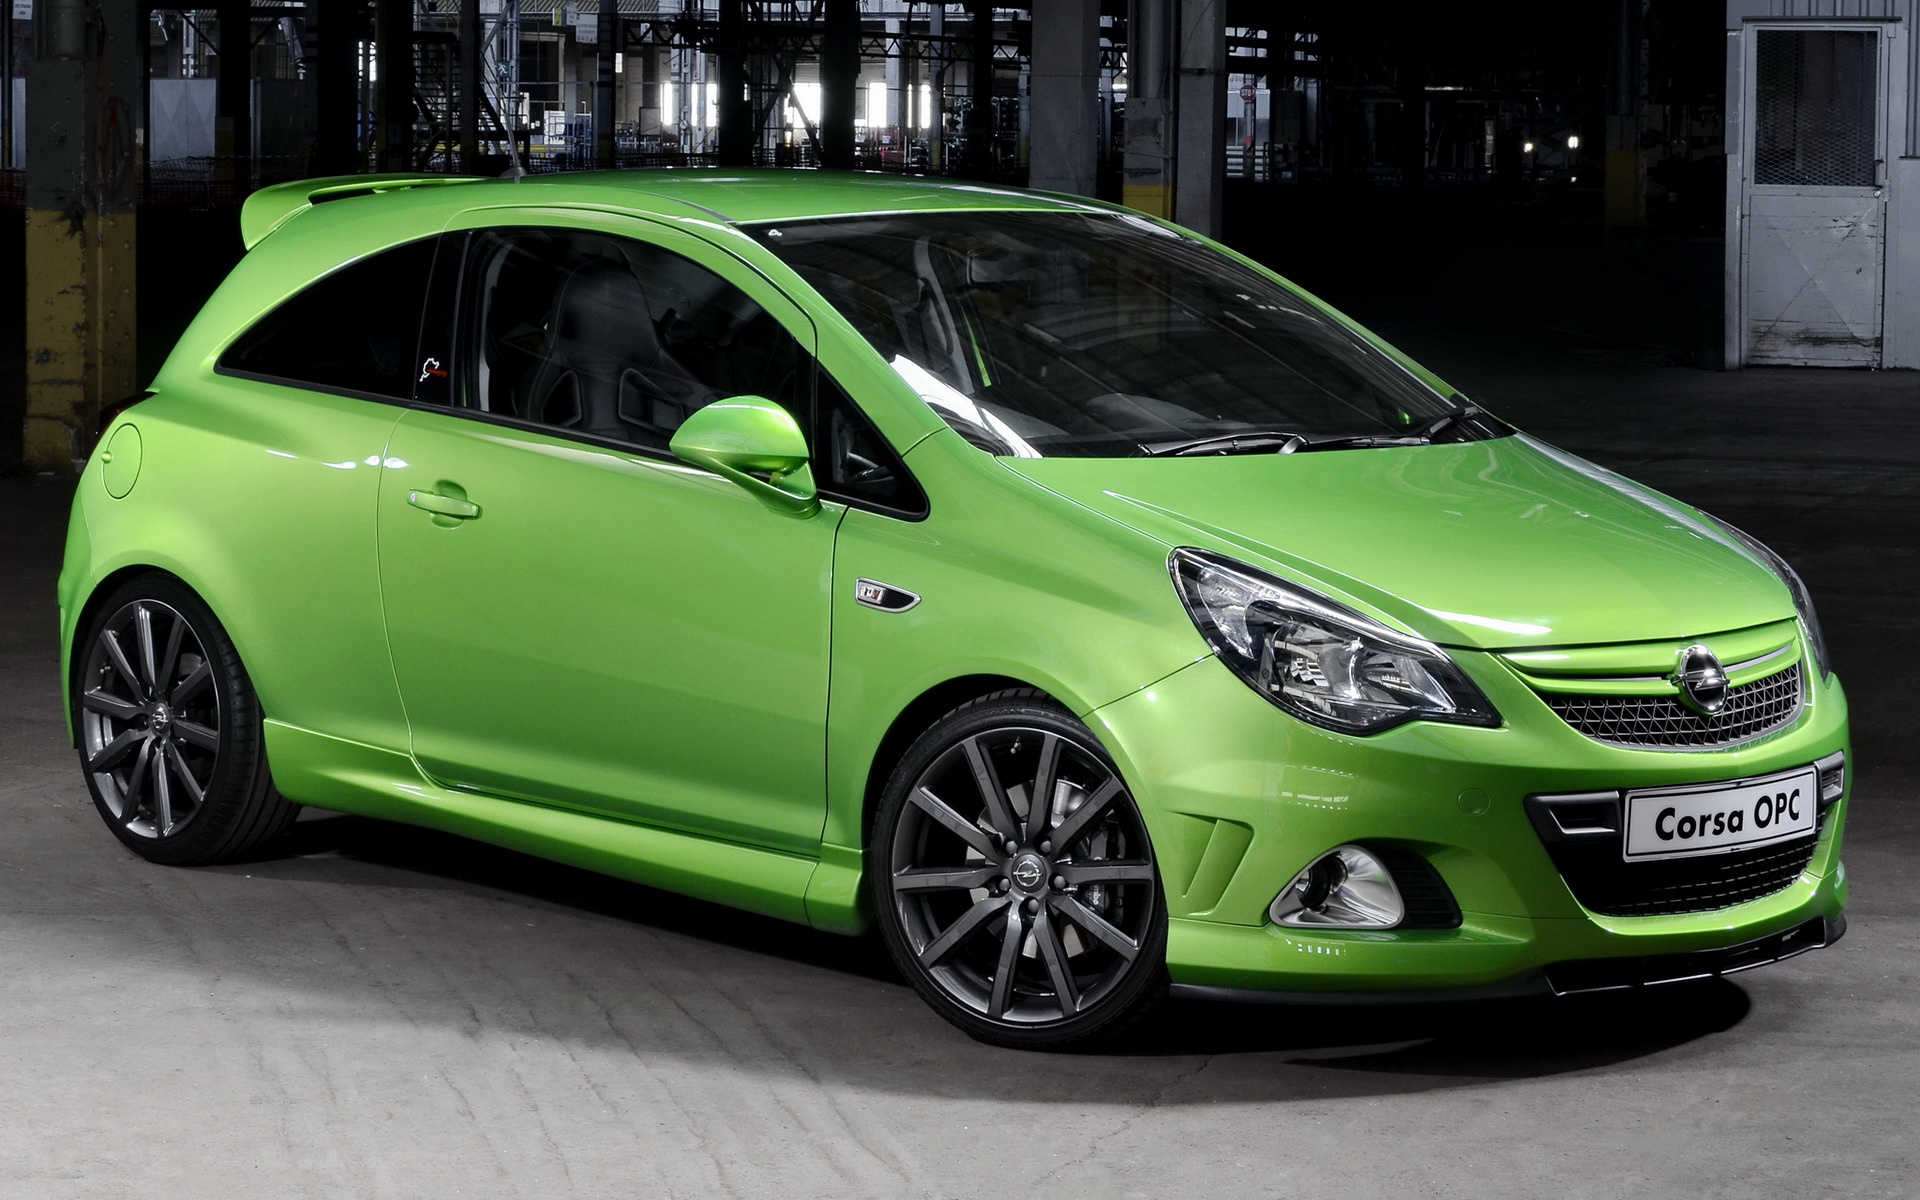 2019 Opel Corsa OPC Nurburgring Edition photo - 4